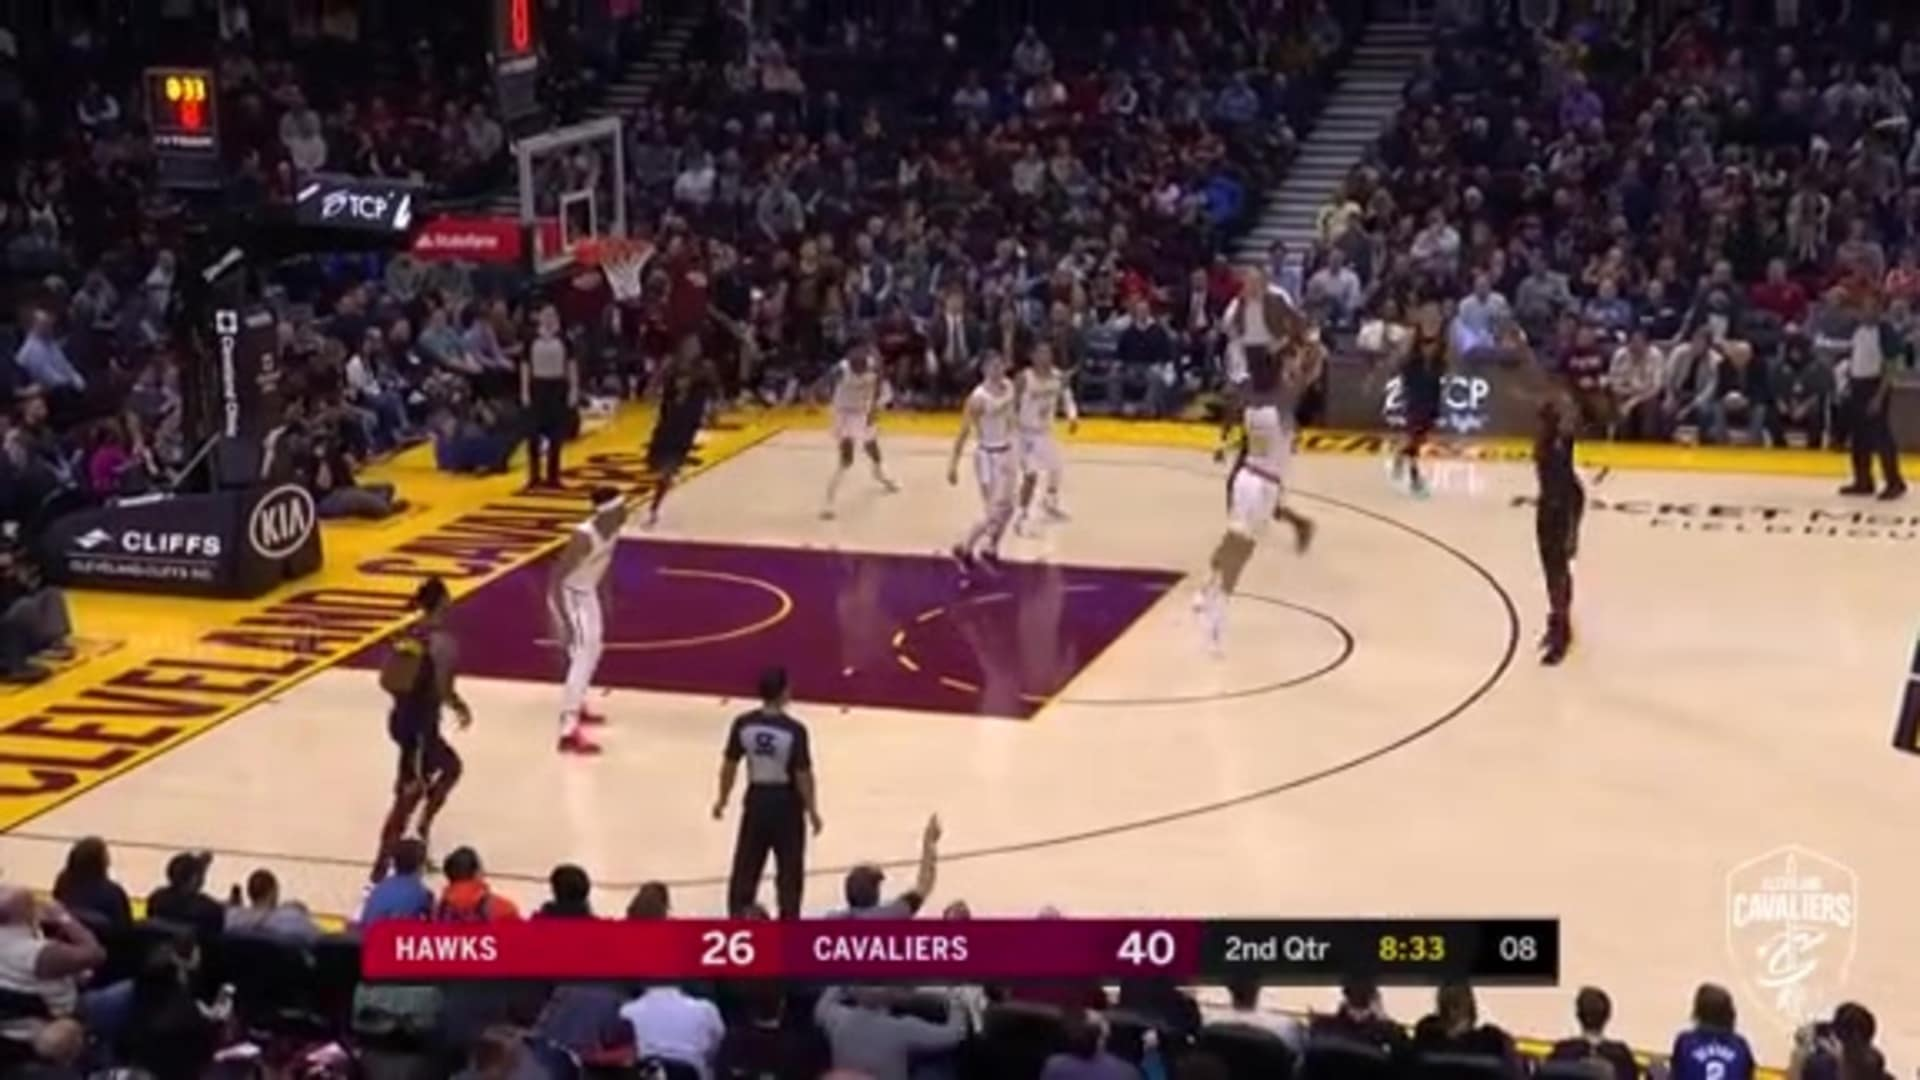 Tristan Scores Eight Straight Cavs Points